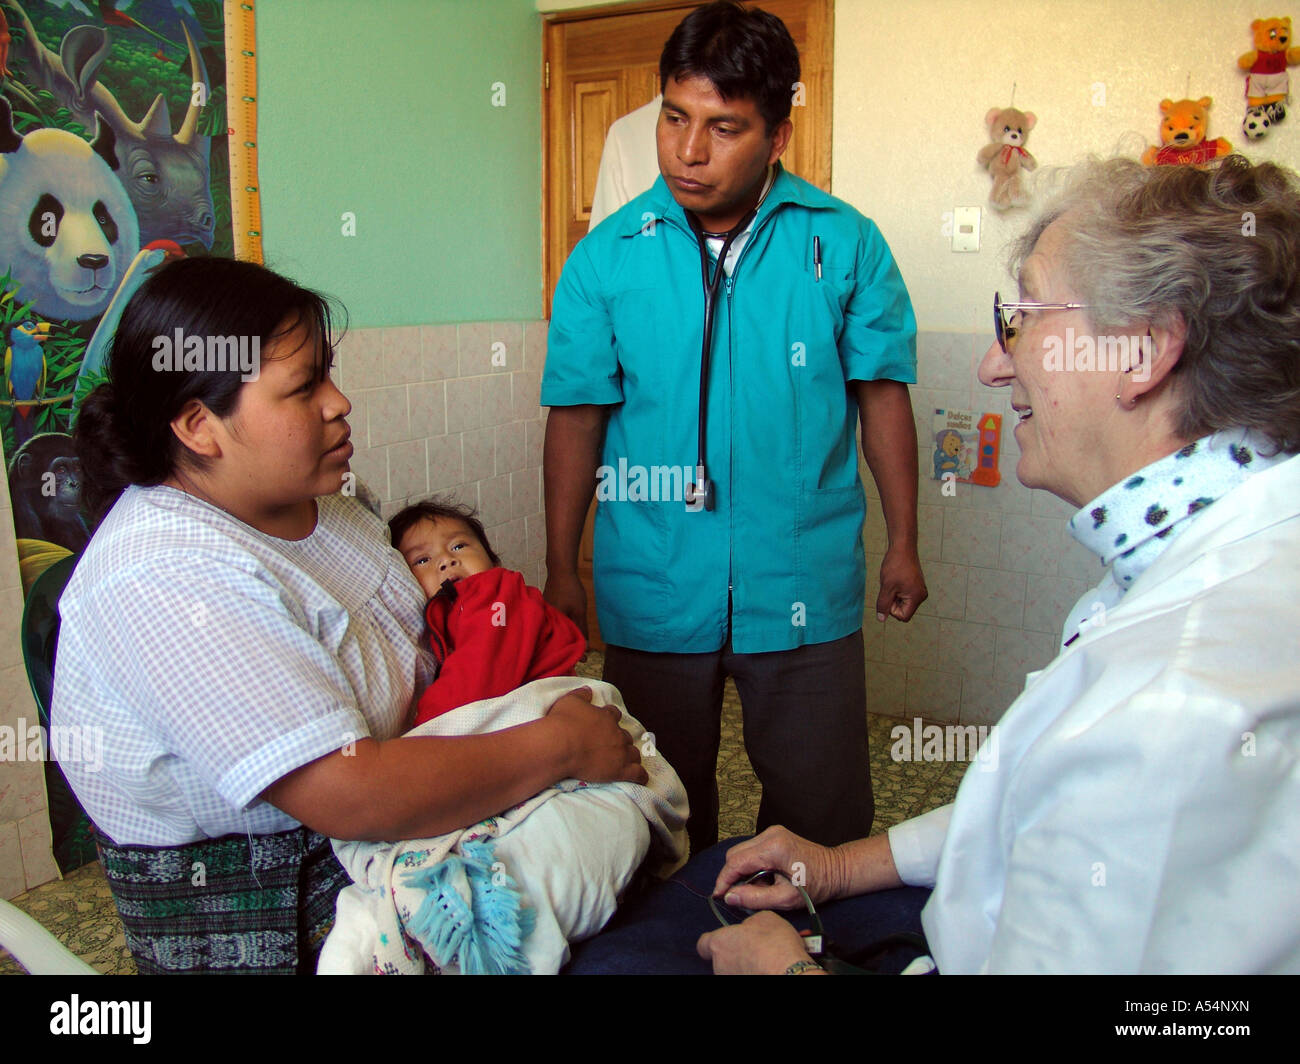 Painet ip1727 guatemala nurse liz remily right attending patients clinic santa clara laguna country developing nation - Stock Image